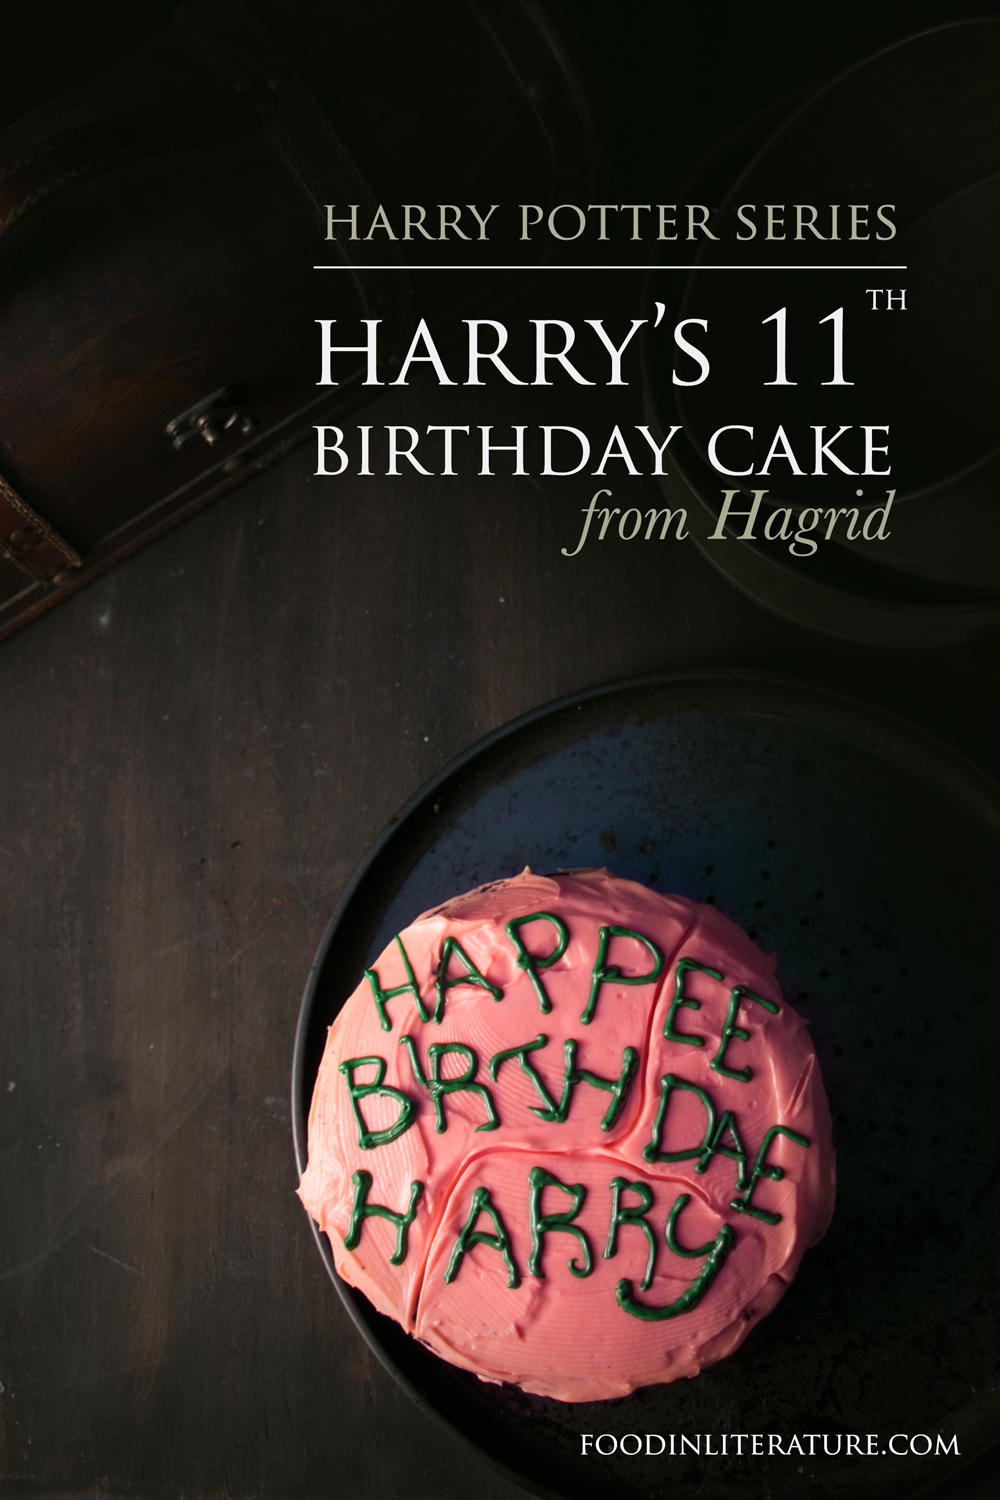 Harry's 11th Birthday Cake from Hagrid